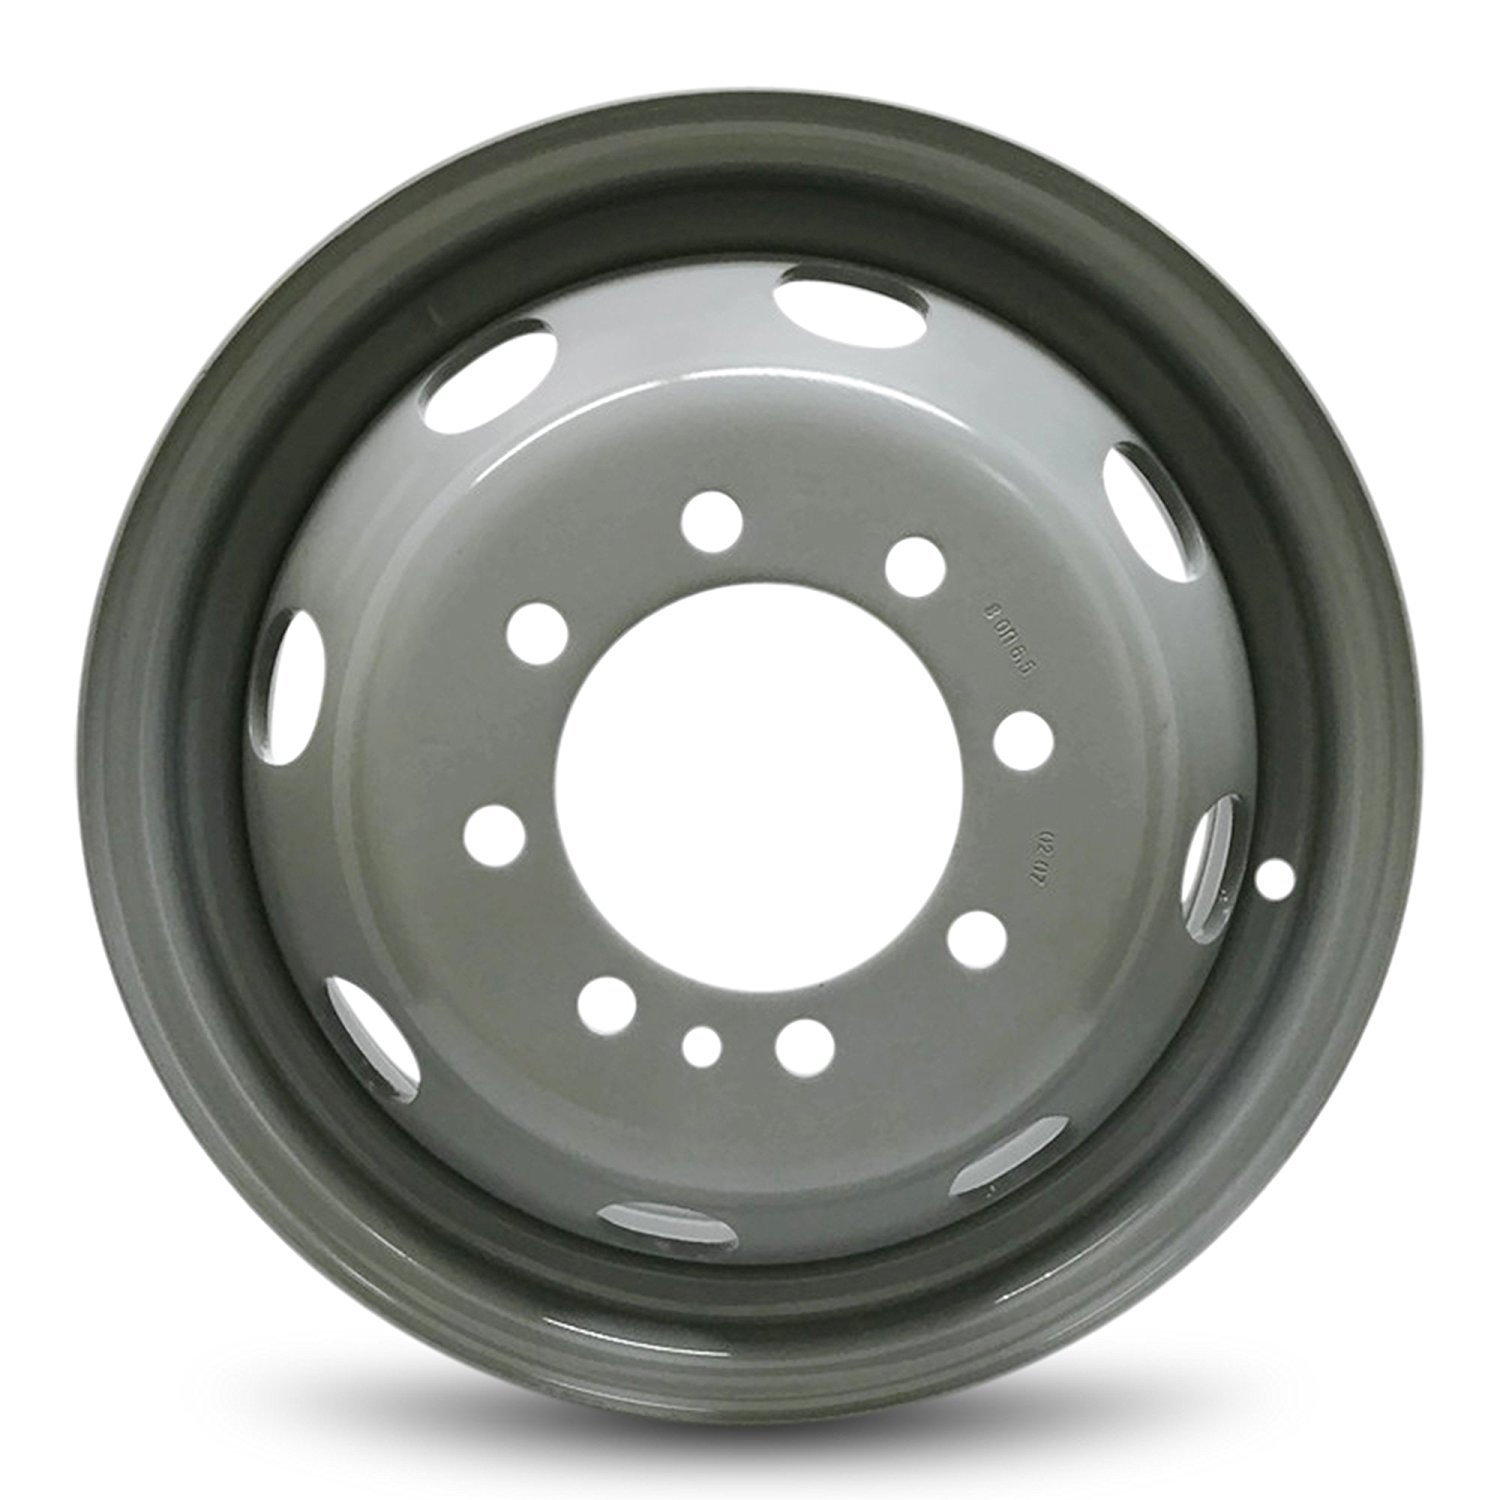 Road Ready Car Wheel For 1992-2007 Ford E350 1996-2003 Ford E450SD 16 Inch 8 Lug gray Steel Rim Fits R16 Tire - Exact OEM Replacement - Full-Size Spare